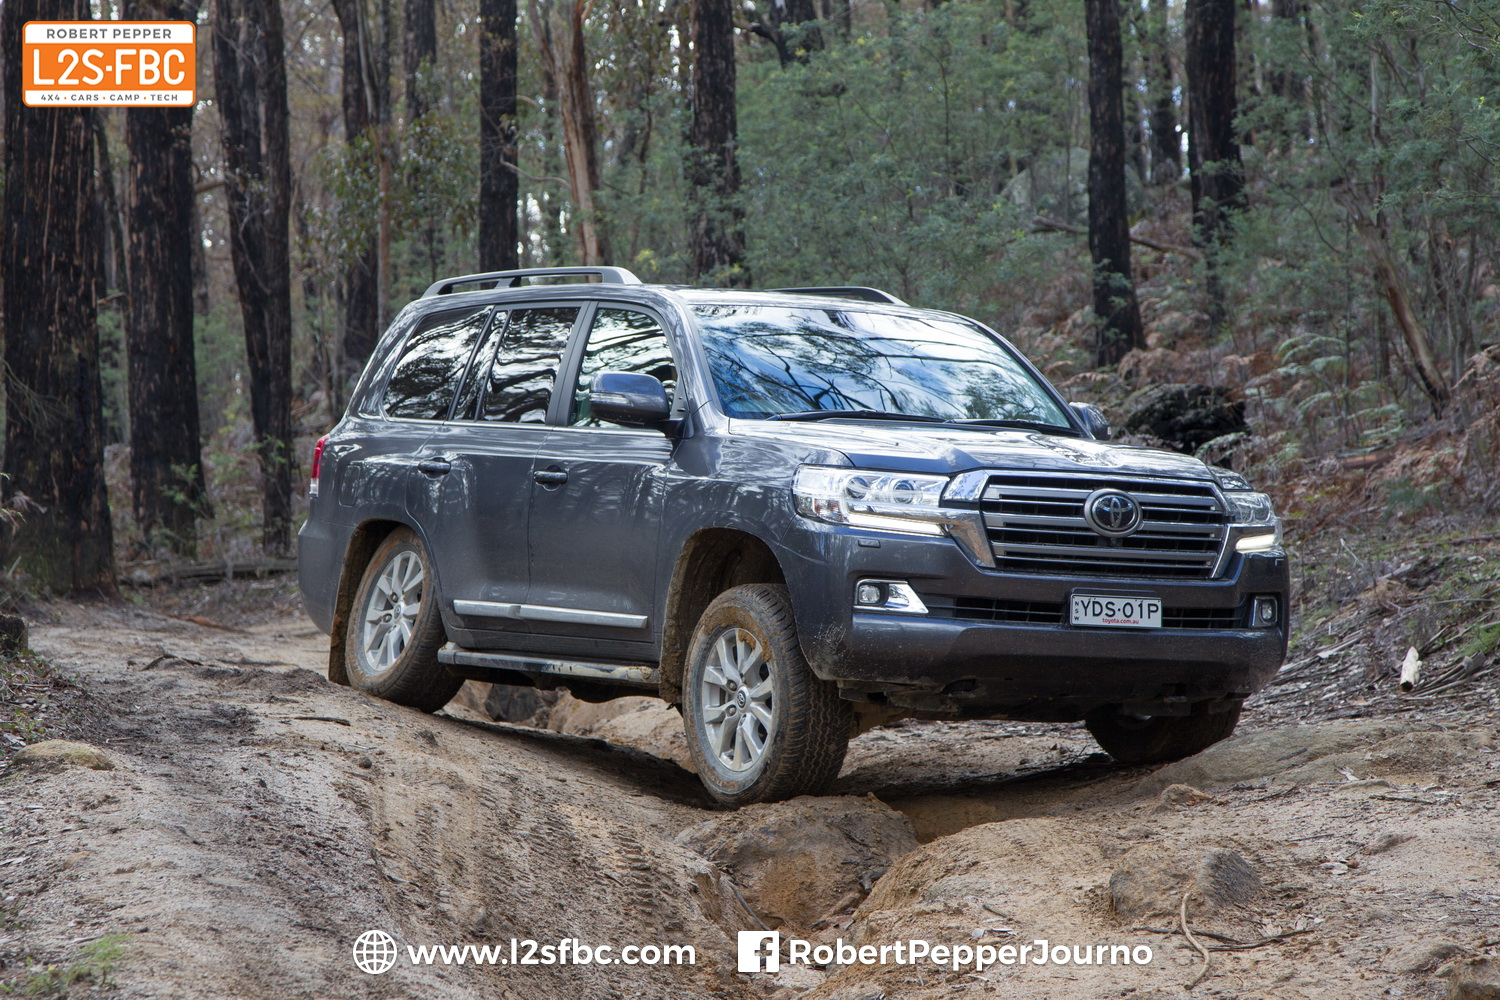 Amarok or Range Rover Sport? Or Discovery 4 or Landcruiser 200 Series?